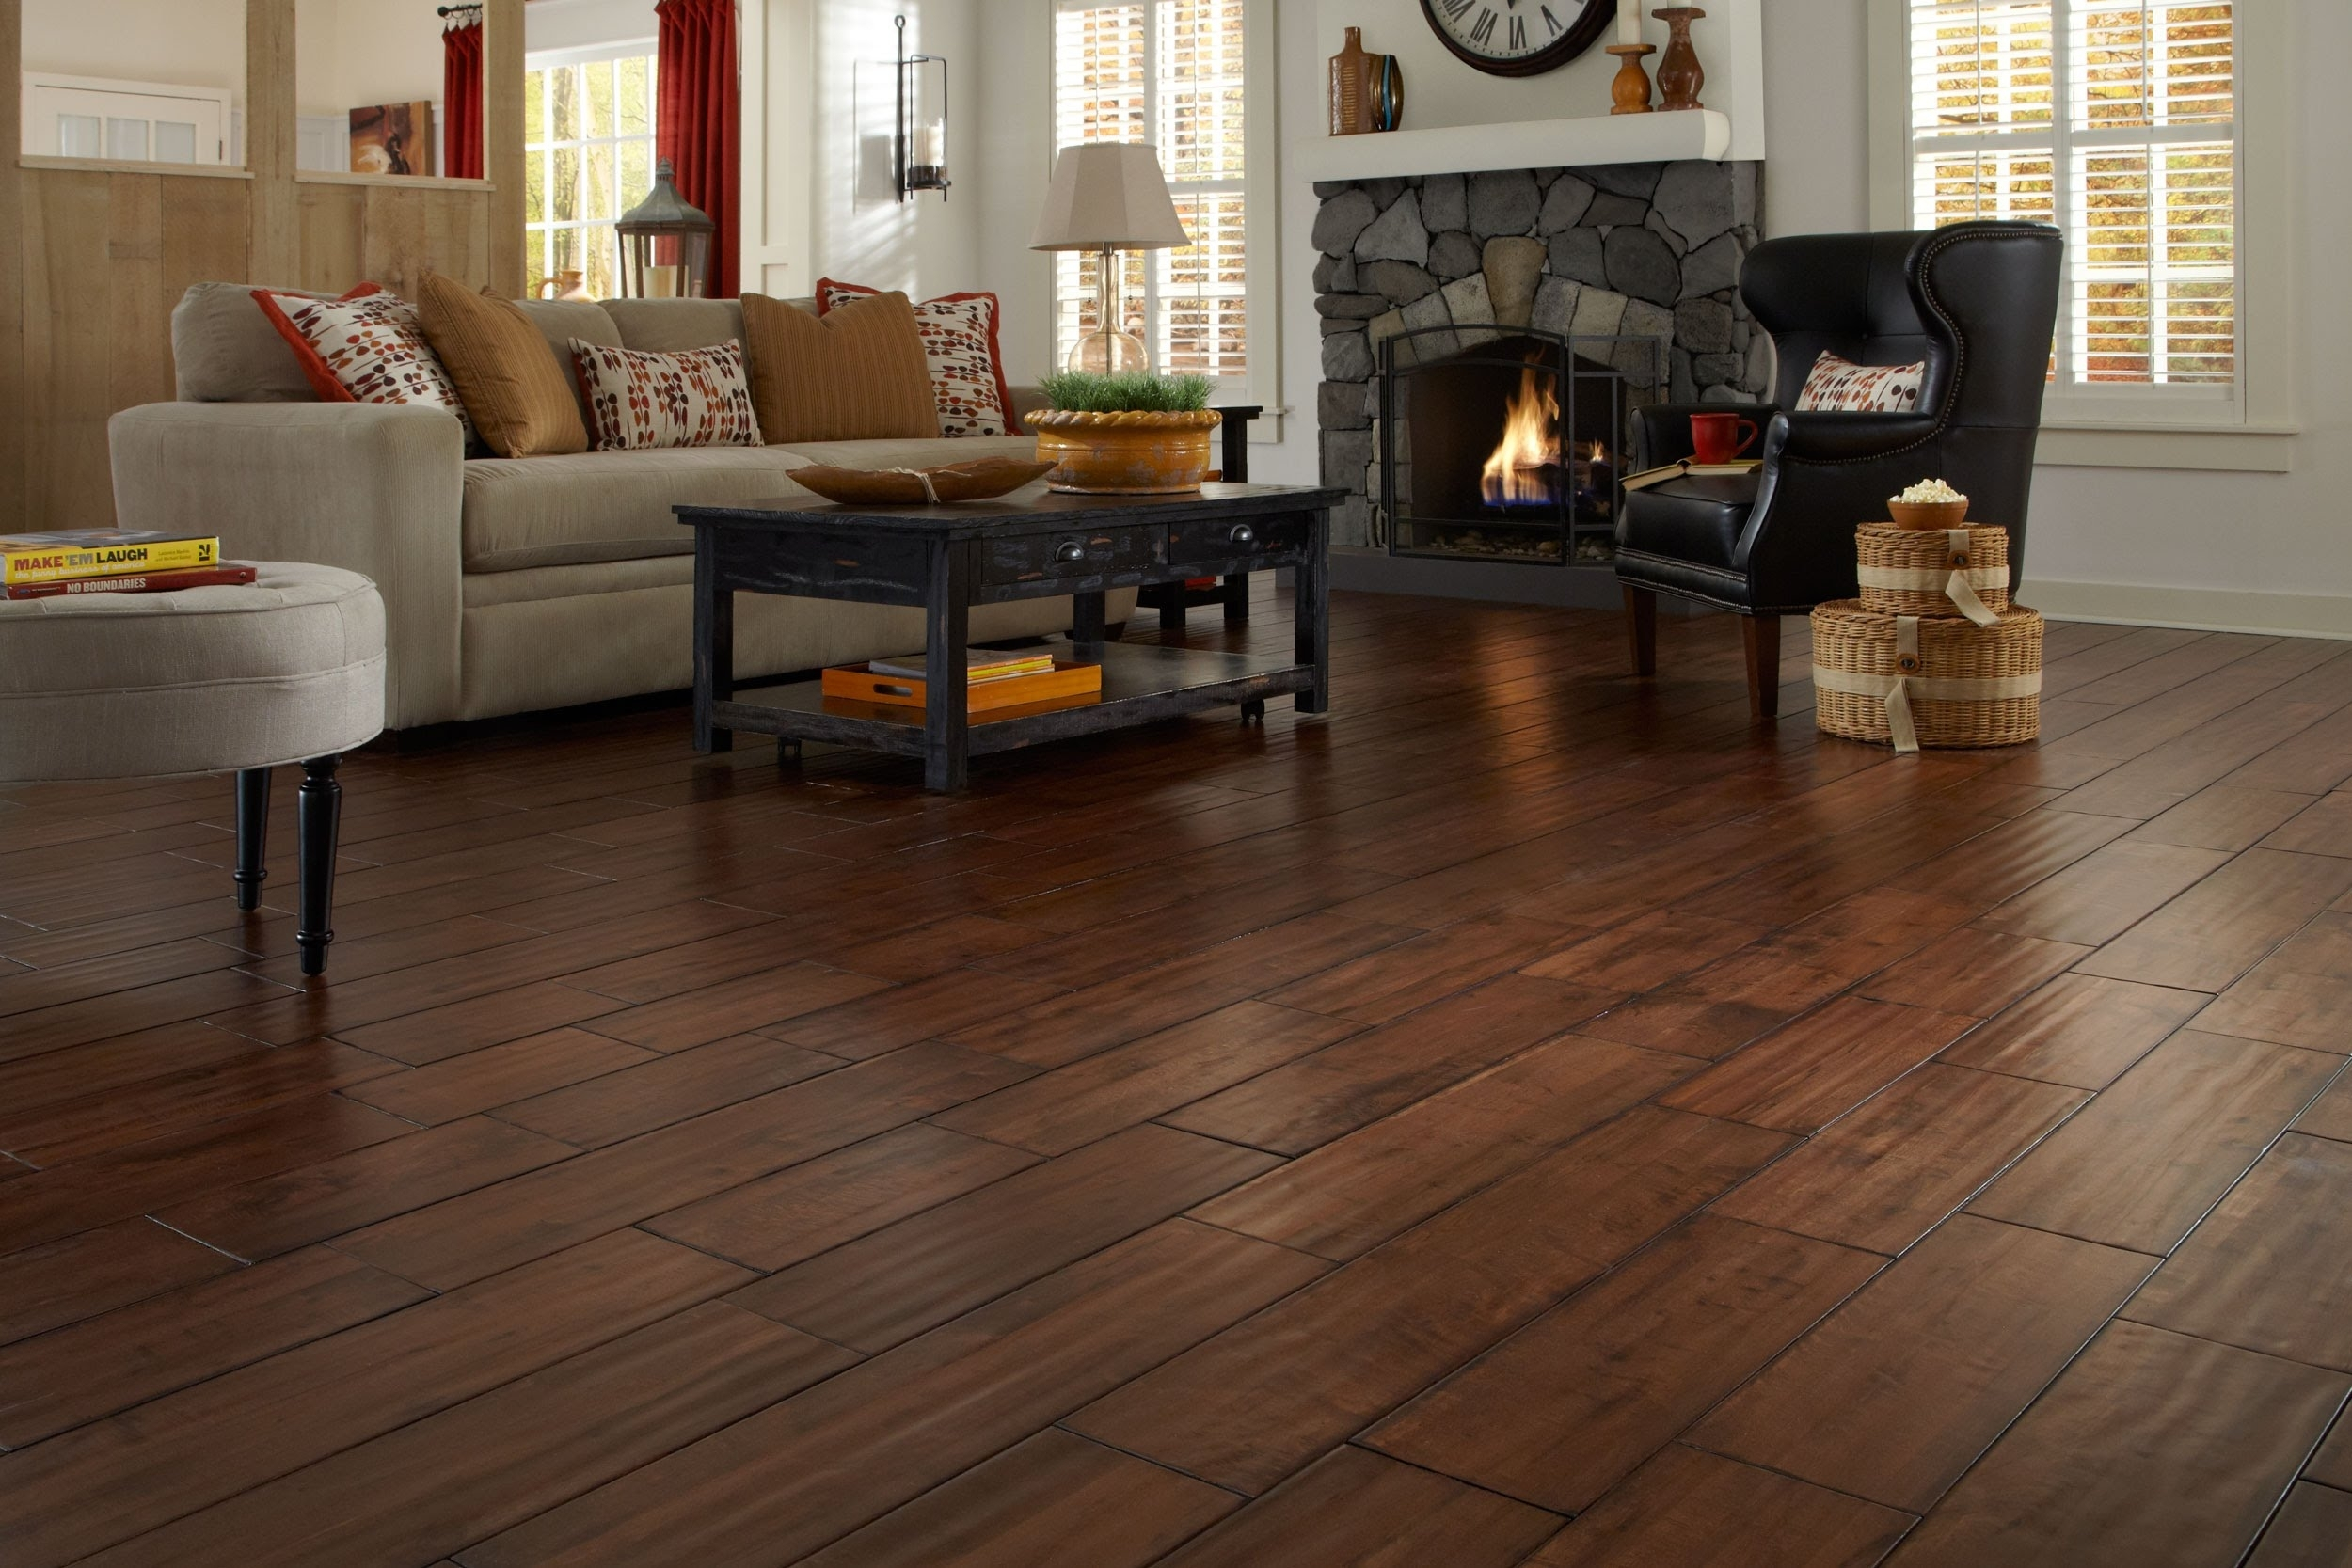 Liquidation Wood Flooring Montrealliquidation wood flooring montreal wood flooring design